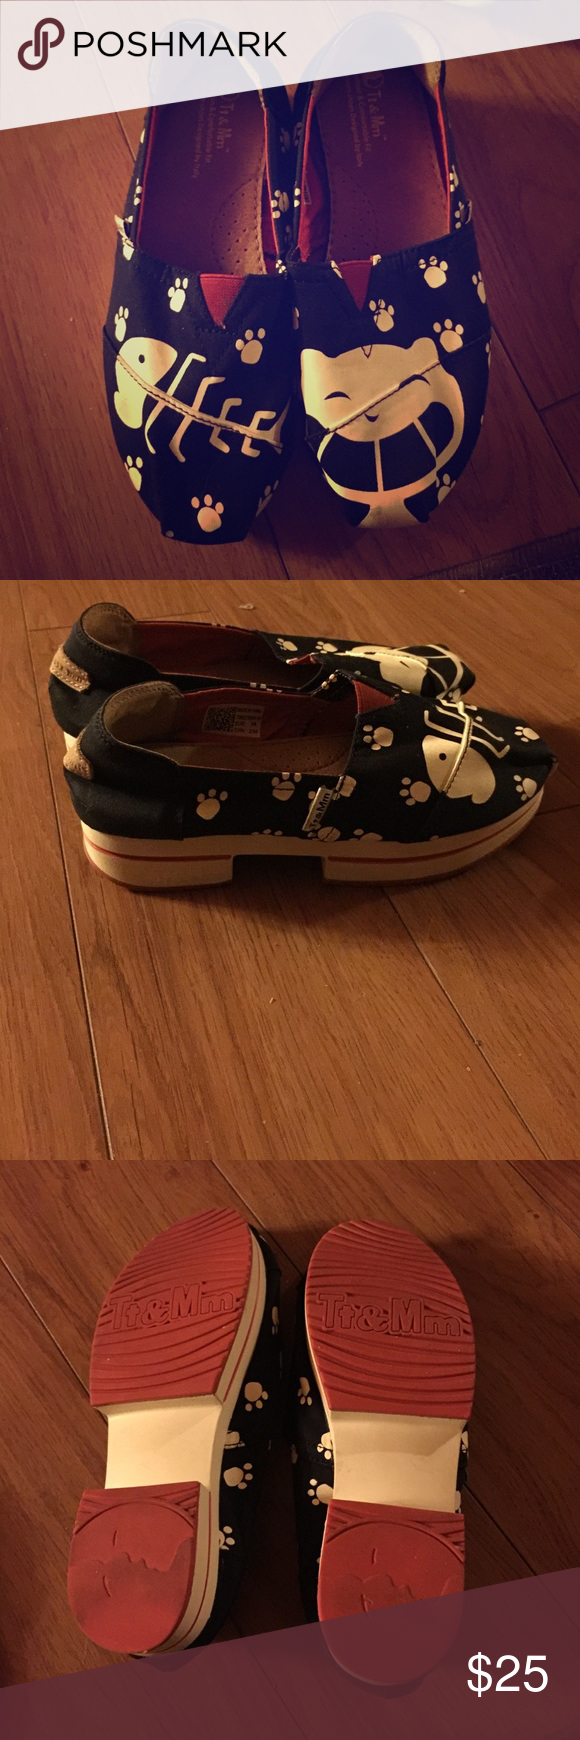 Cute cat print shoes In a good condition. Price firm. An inch and a half heel. Color is navy Shoes Flats & Loafers